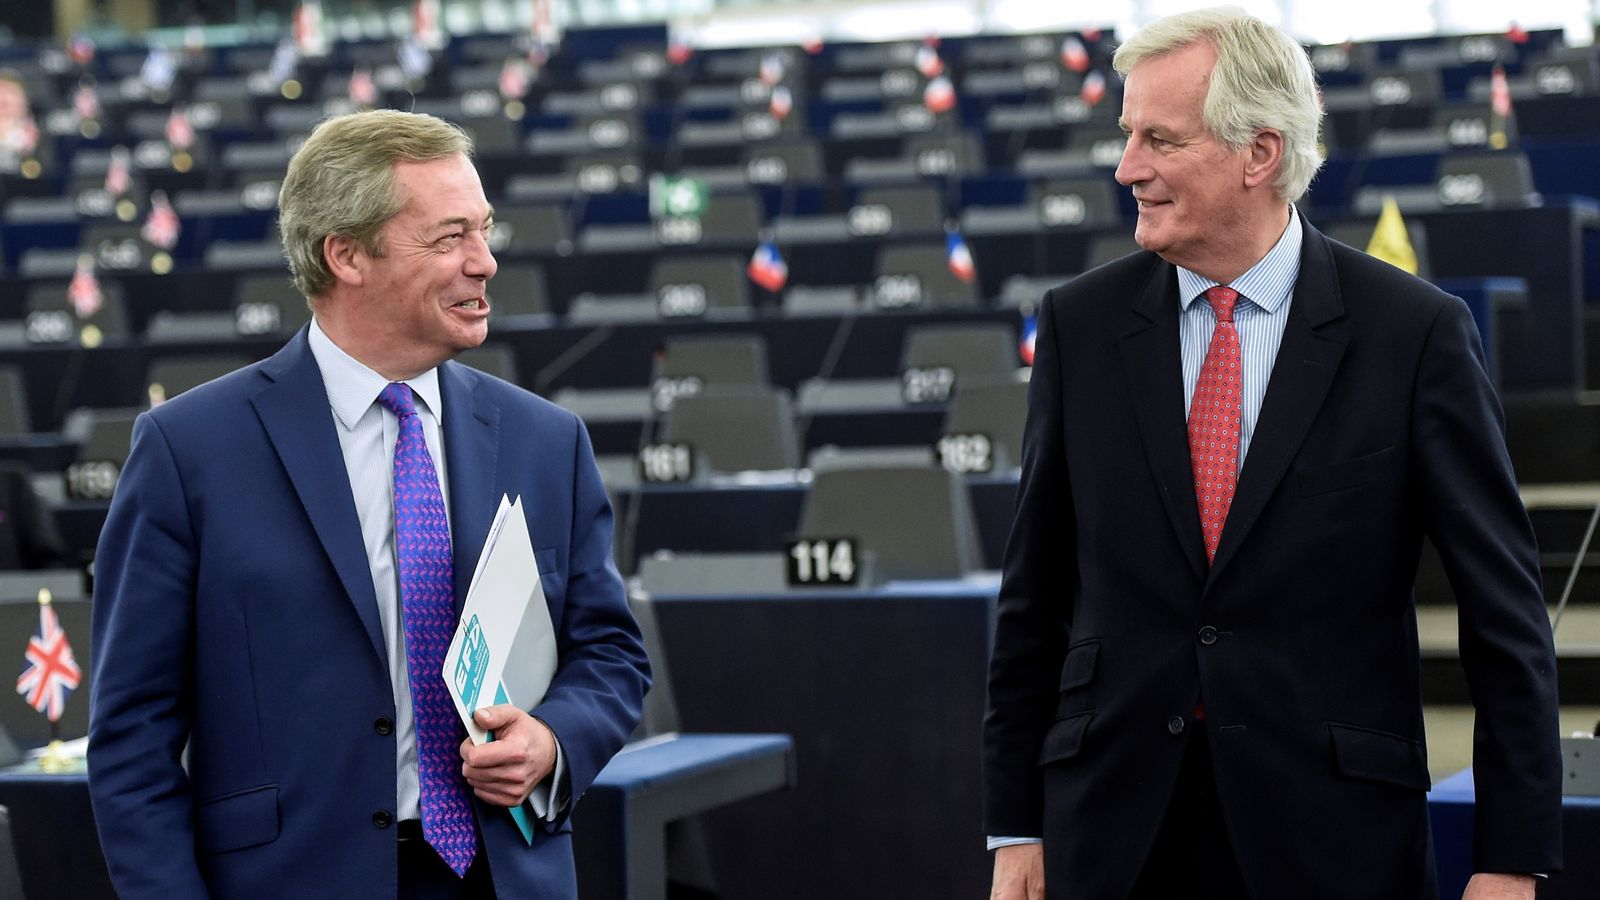 Nigel Farage meeting EU's Brexit negotiator 'like sending ...